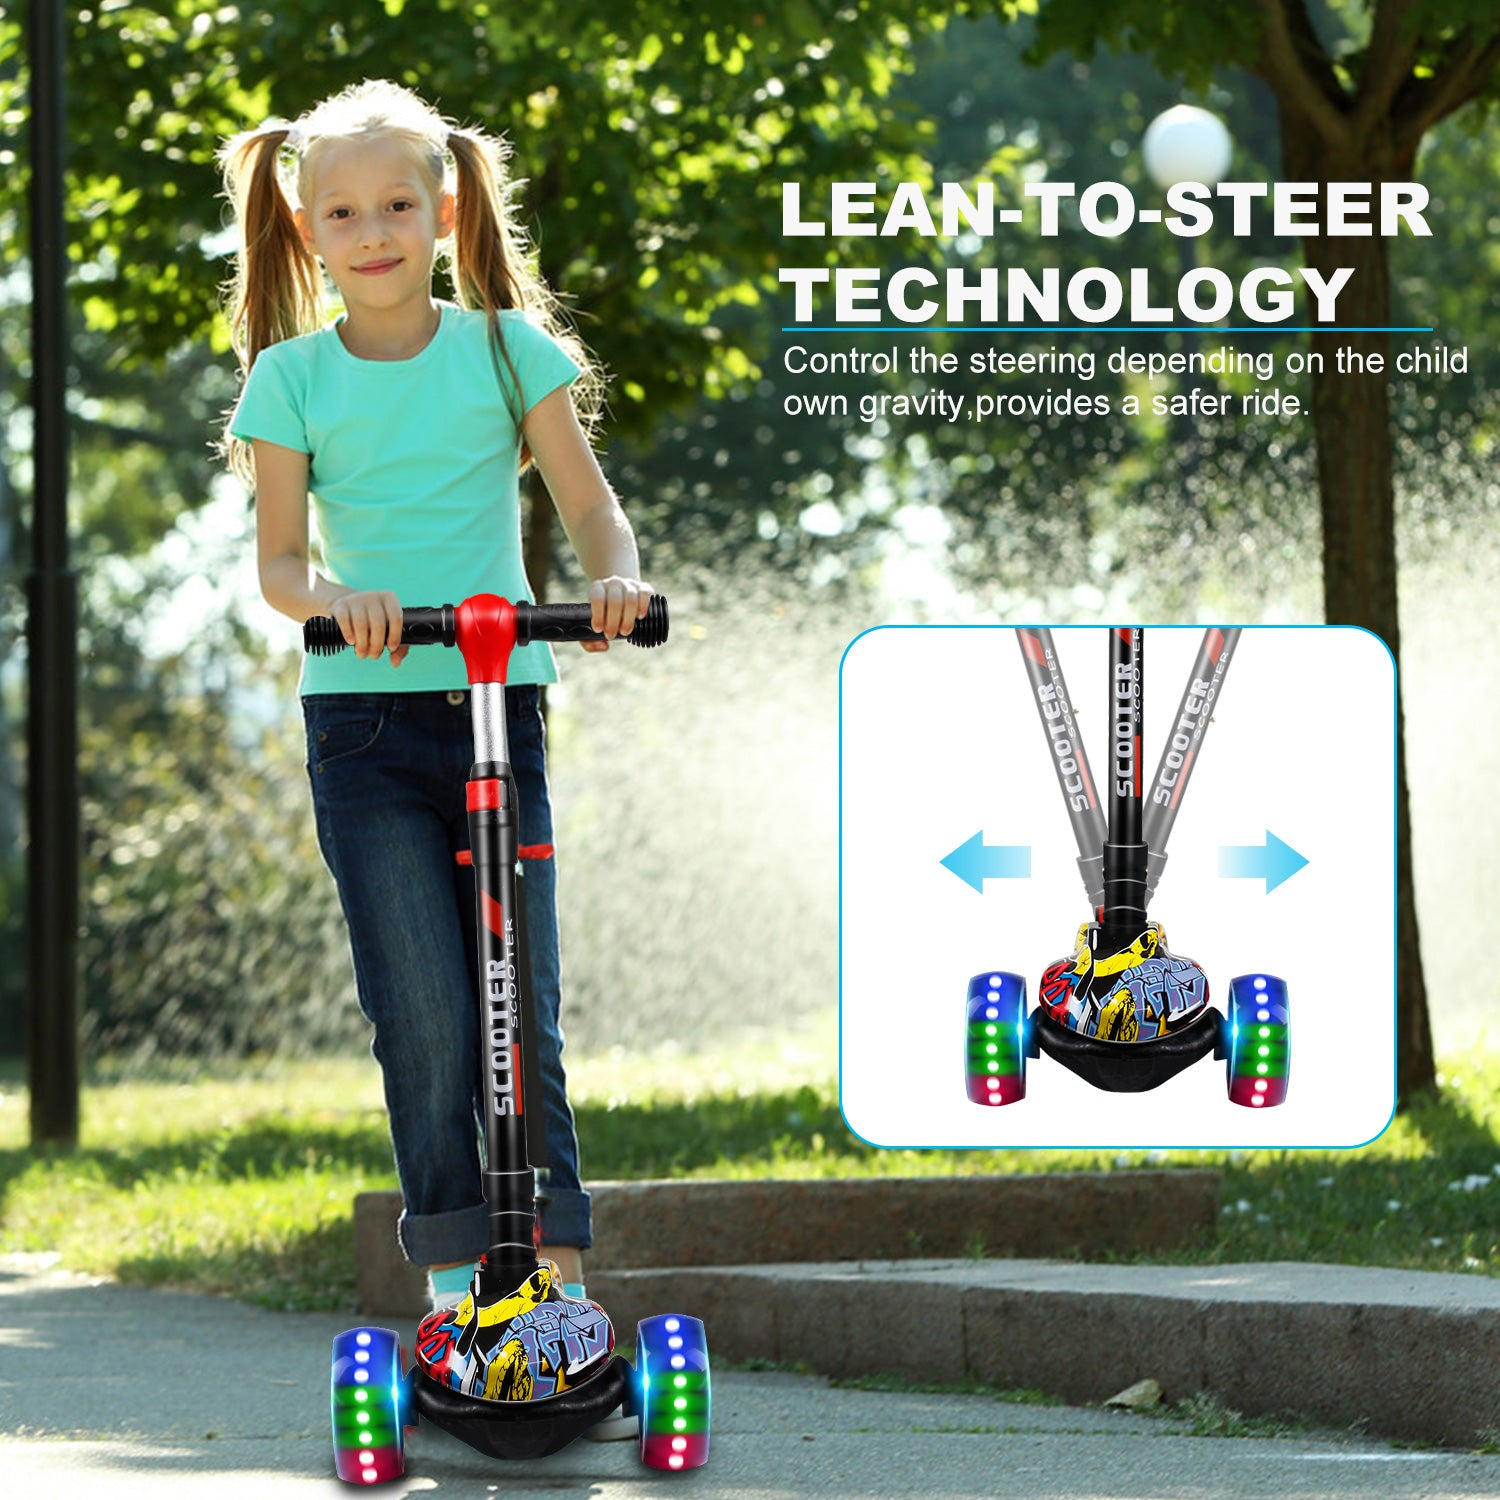 SISIGAD Kick Scooter for Kids, 3 Wheel Kids Scooter with Led Flashing Wheels, Adjustable Height Toddler Scooter for Kids Ages 3-8 (Graffiti Yellow) - SISIGAD